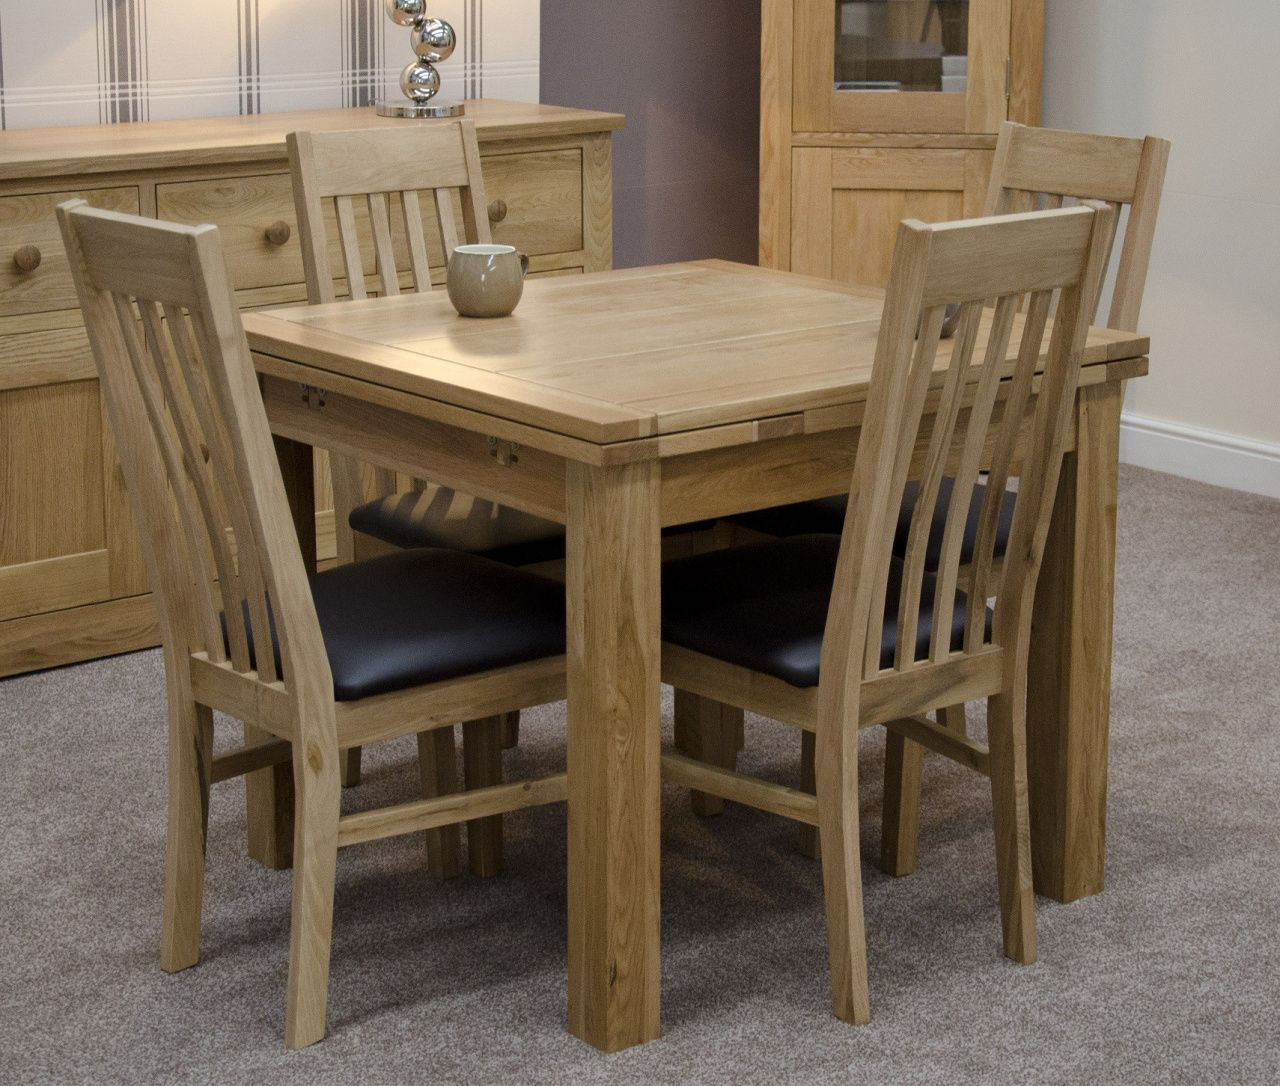 Gentil Why We Need Small Kitchen Table Midcityeast With Regard To Proportions 1280  X 928 Small Kitchen Table Oak   You Use It Every Single Day.